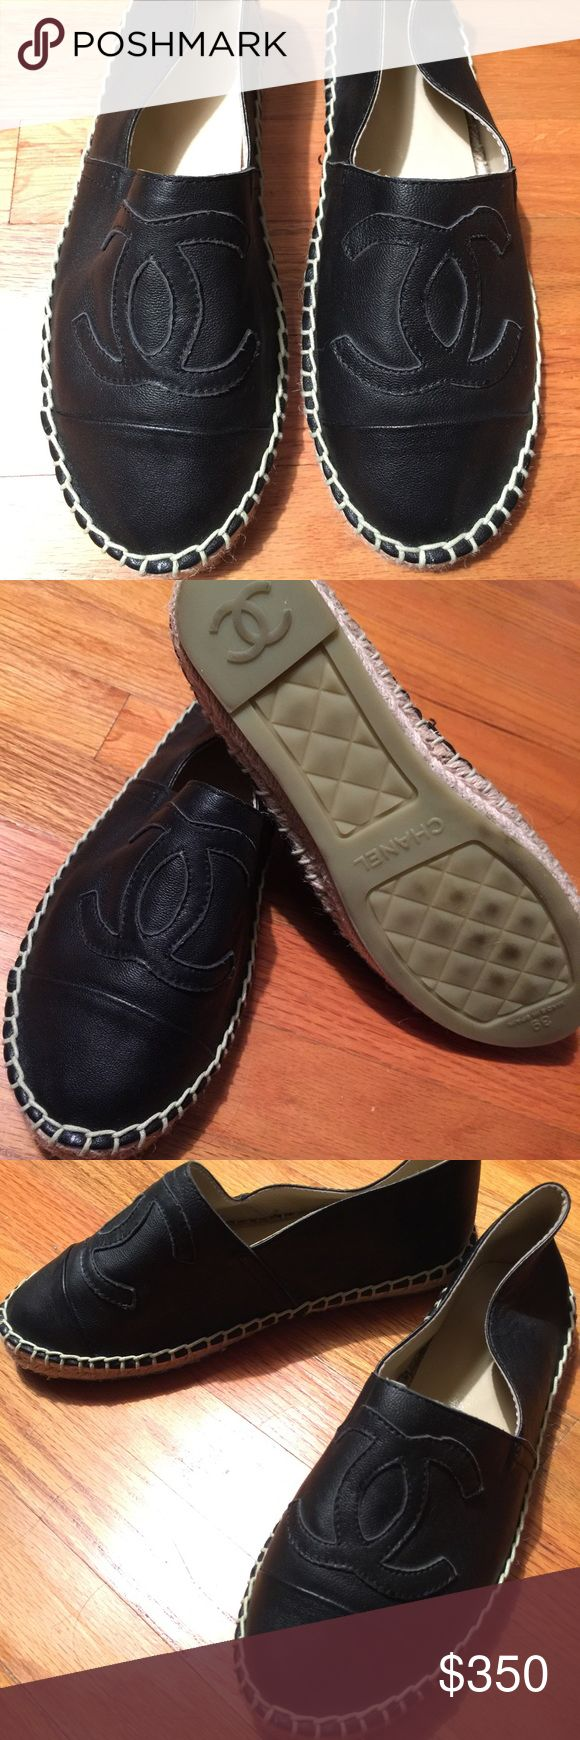 Chanel Espadrilles Black leather espadrilles. Run small. I am a true 8 and these feel like a 7. Bought through consignment WITH NO AUTHENTICATION. For sale OBO AS IS. No Trades and no low ball offers. Just want to make as close to what I spent on them. Thank you! CHANEL Shoes Espadrilles